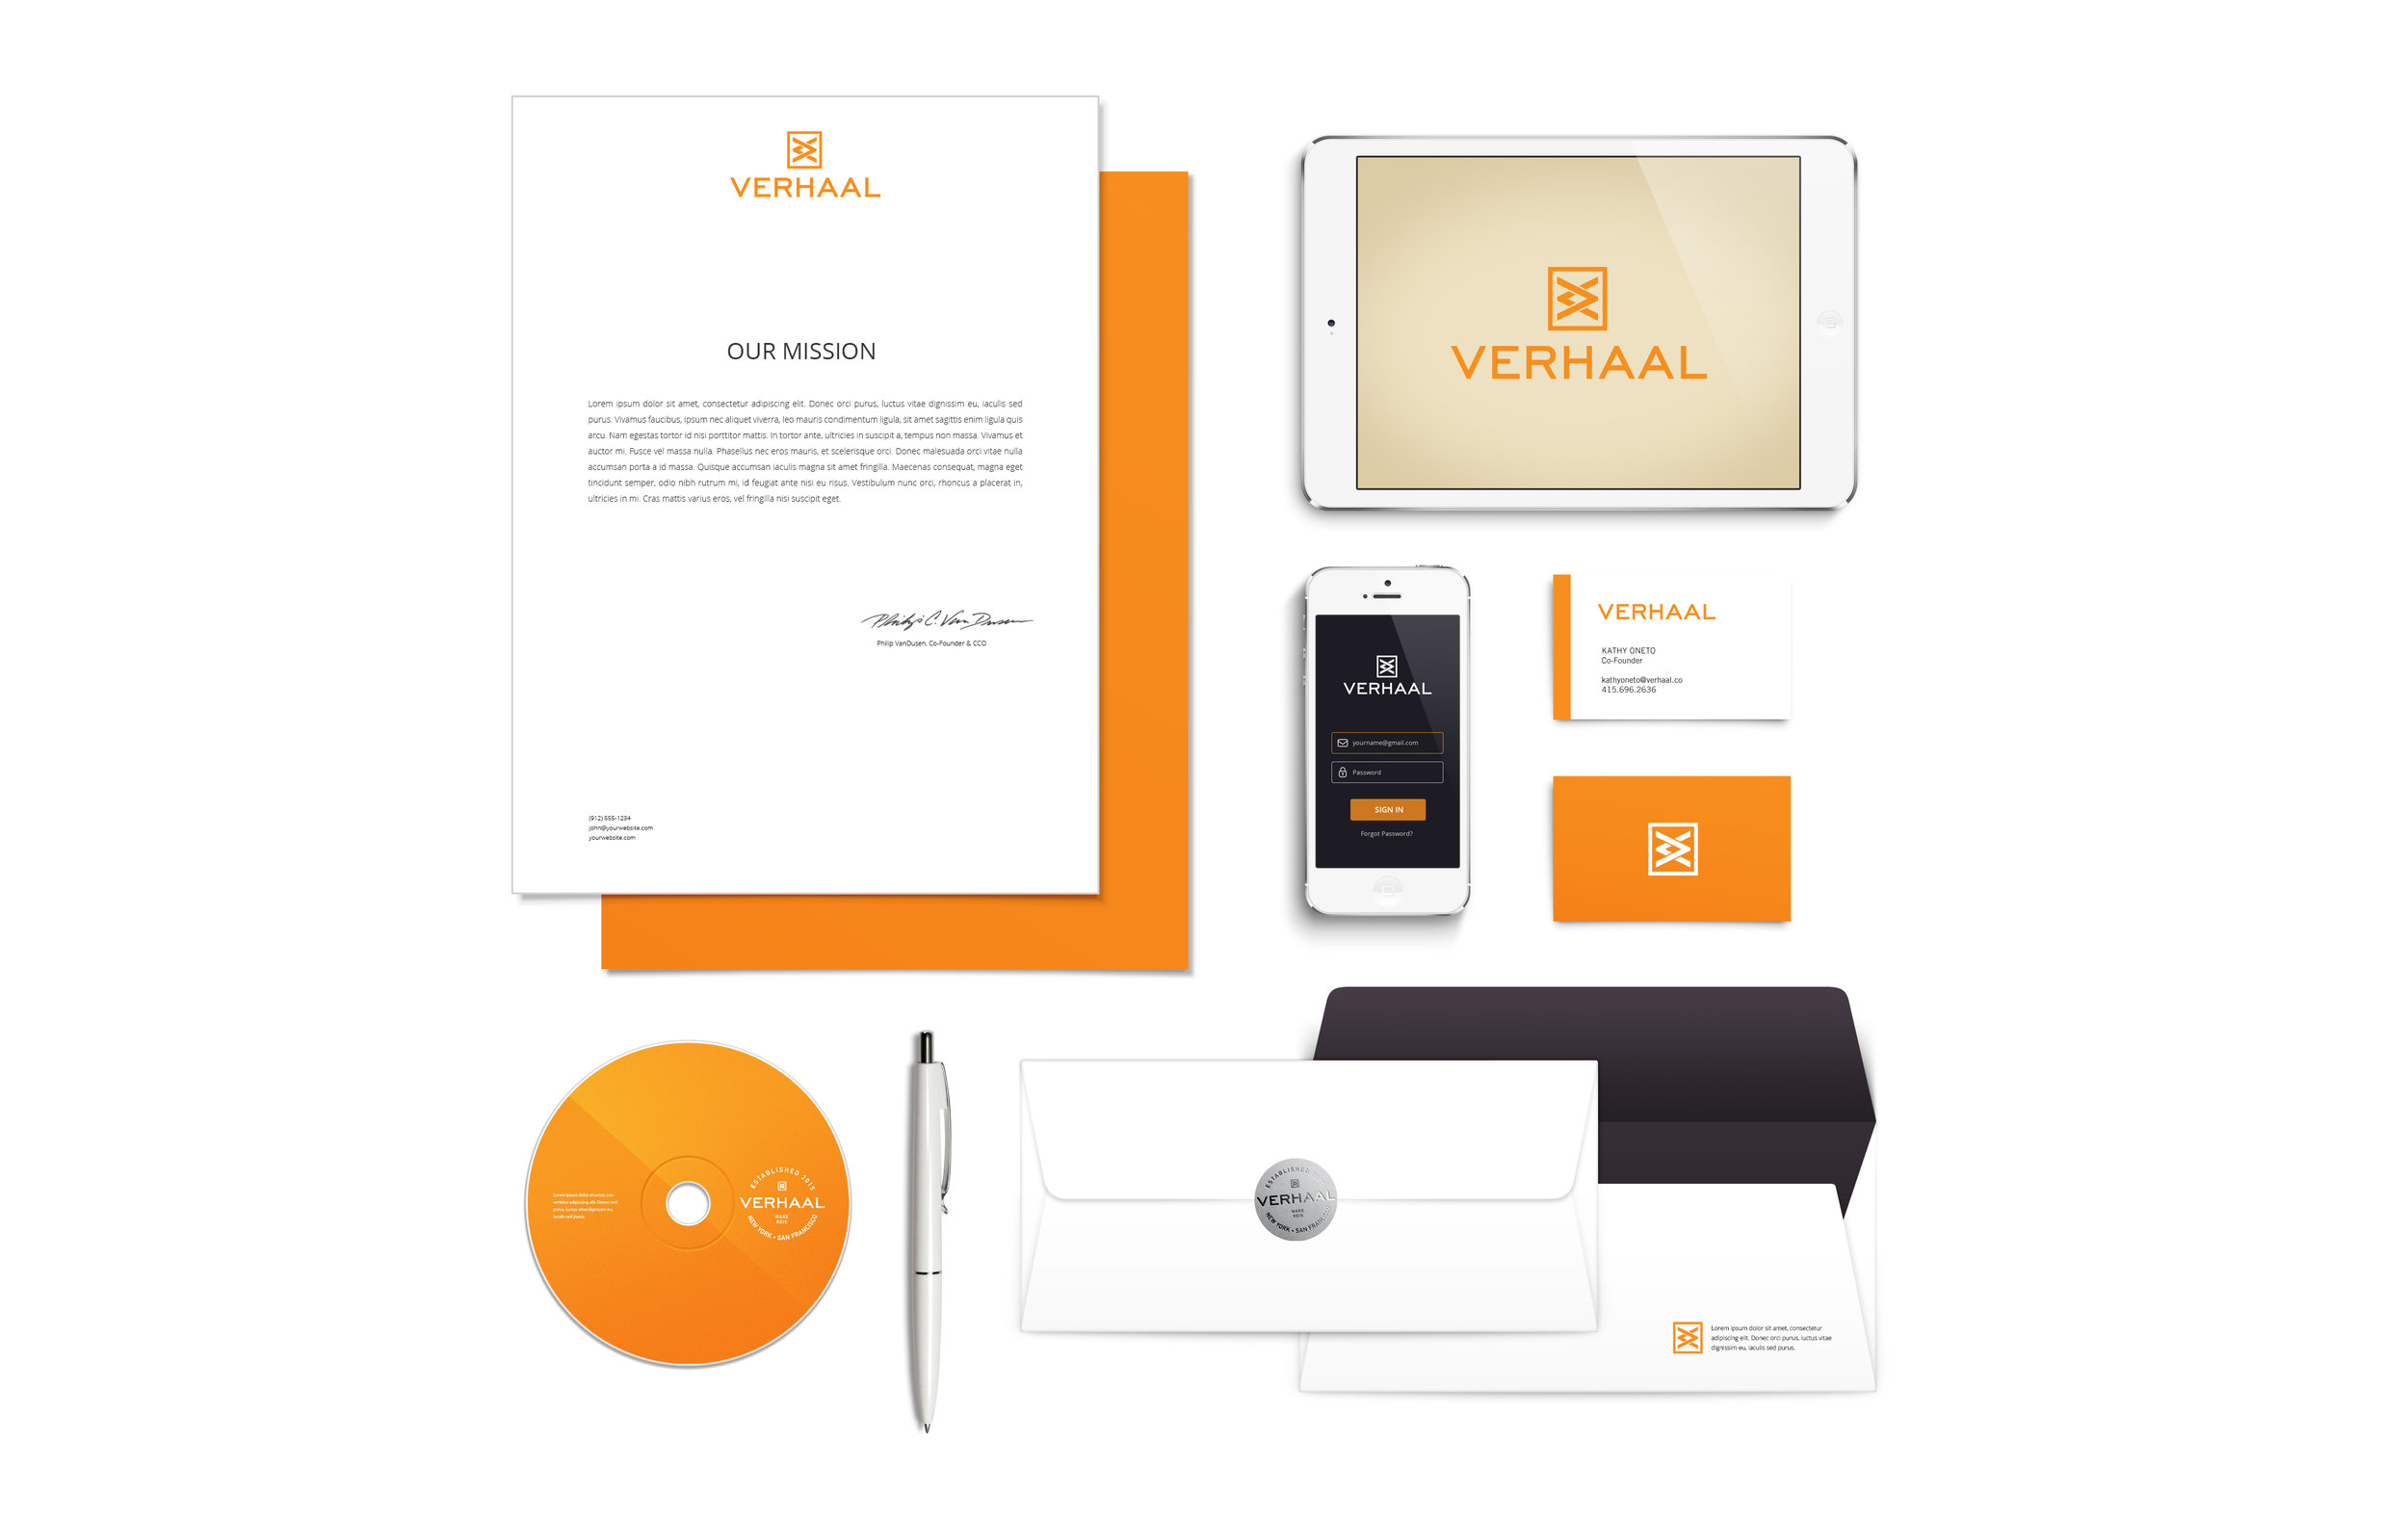 Verhaal_Branding Identity Mock-Up Vol4 WIDER on White BKGD 2.jpg